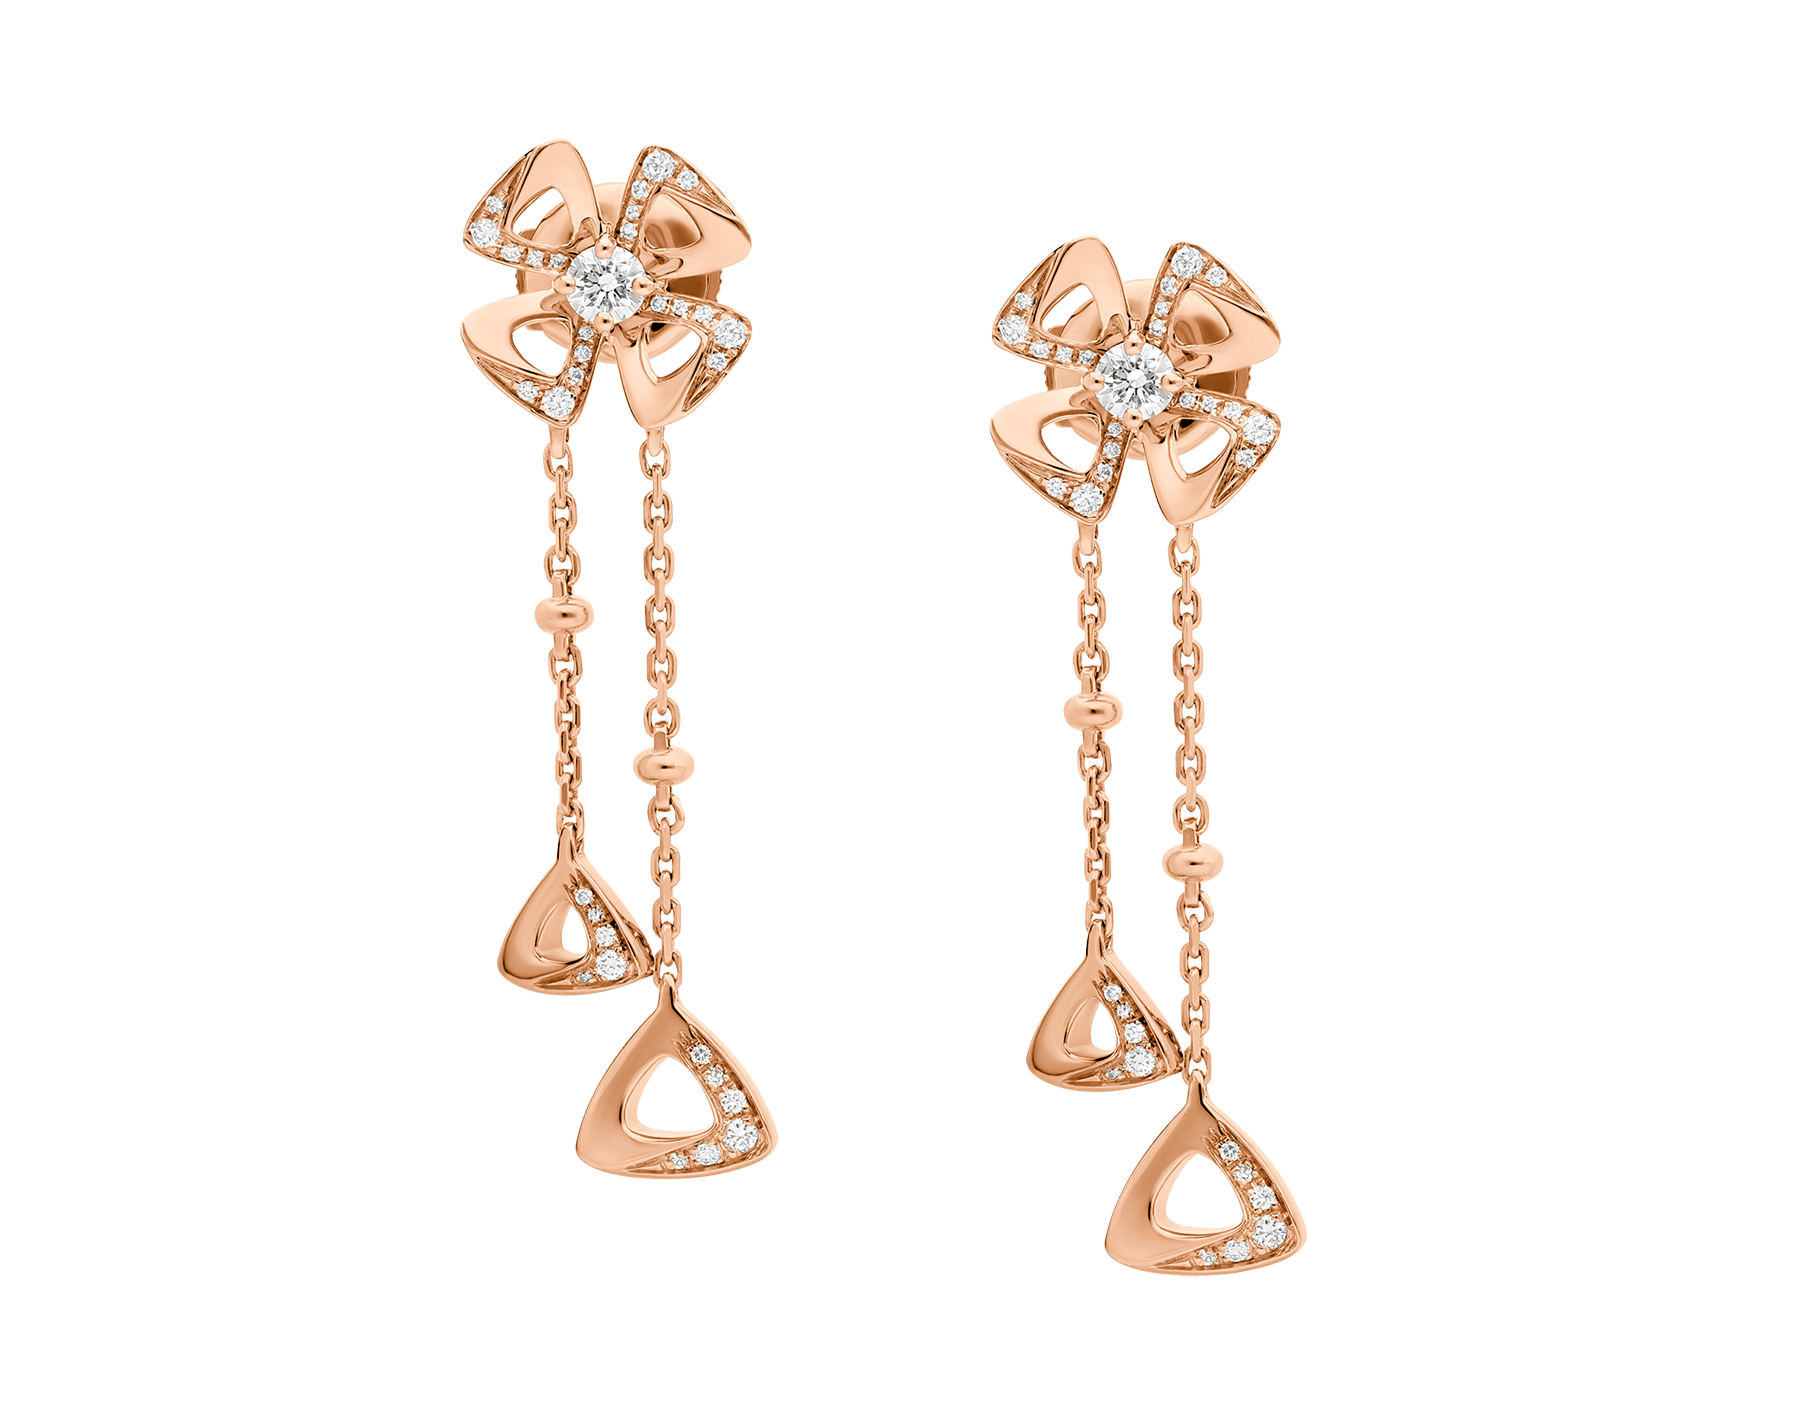 Fiorever 18 kt rose gold pendant Earring set with two round brilliant-cut diamonds (0.21 ct) and pavé diamonds (0.17 ct) 357143 image 1